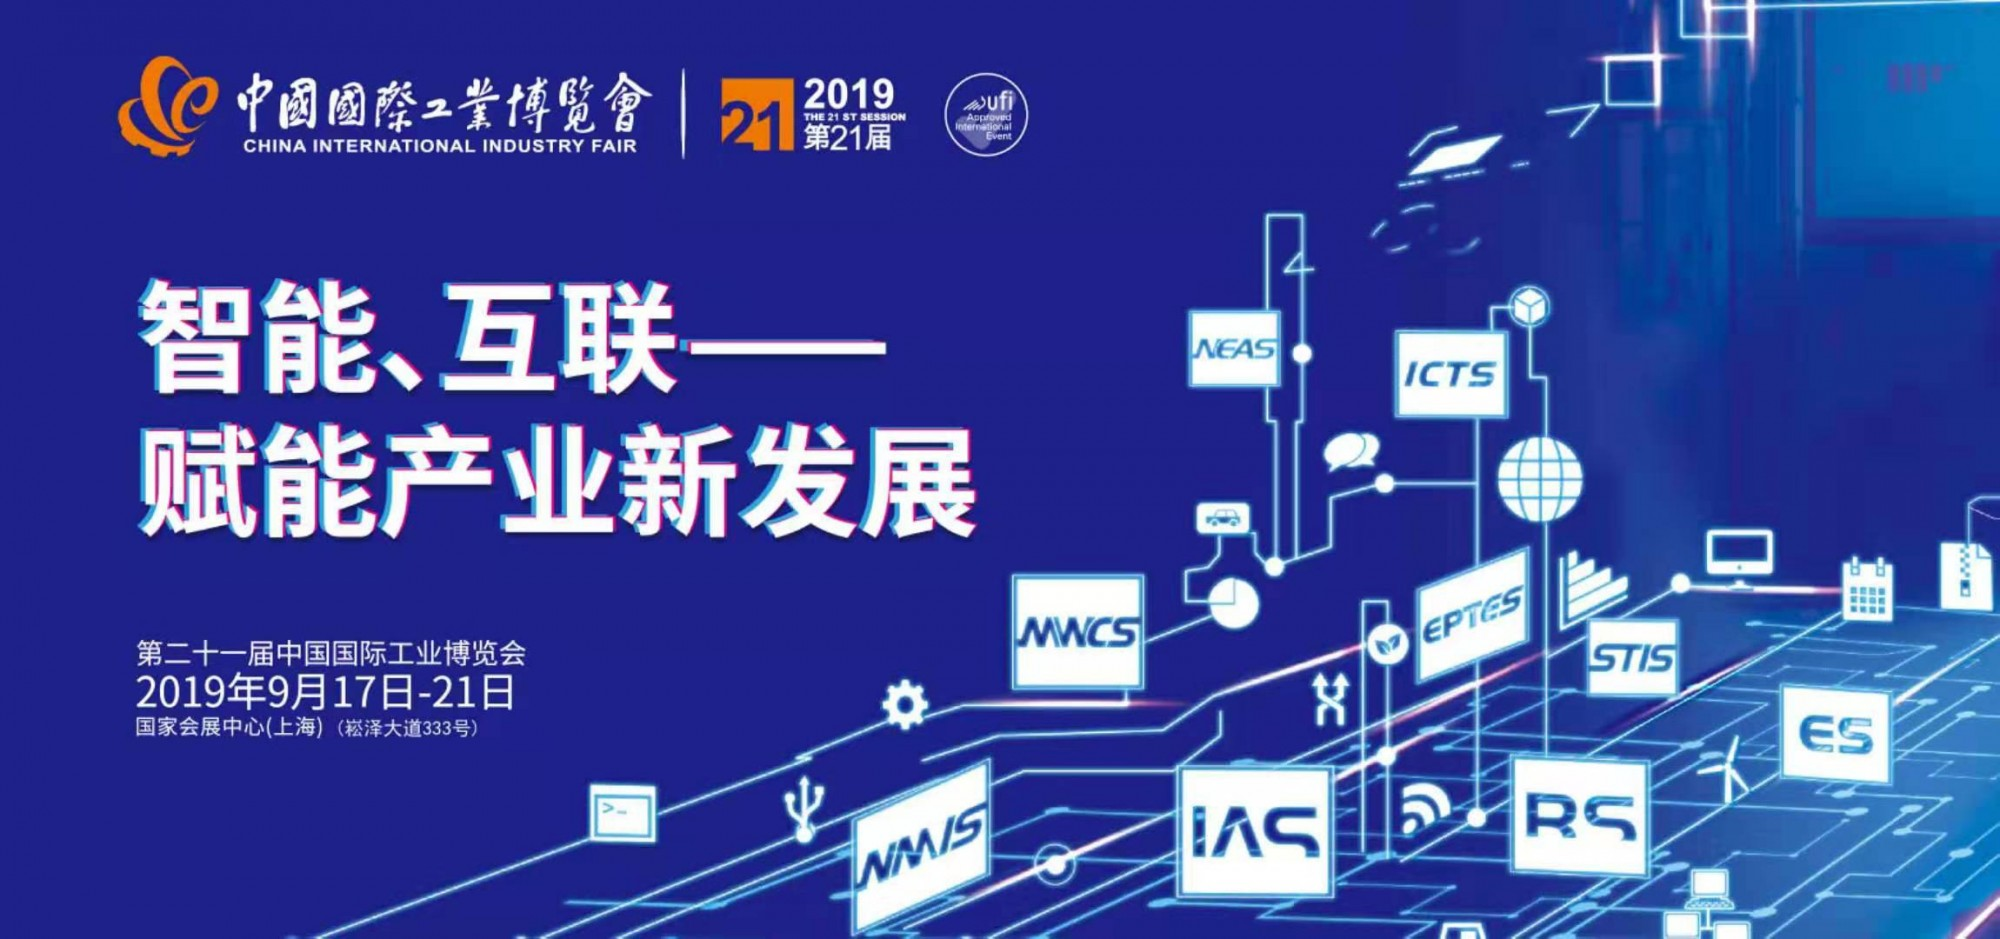 The 21st China International Industrial Expo 2019